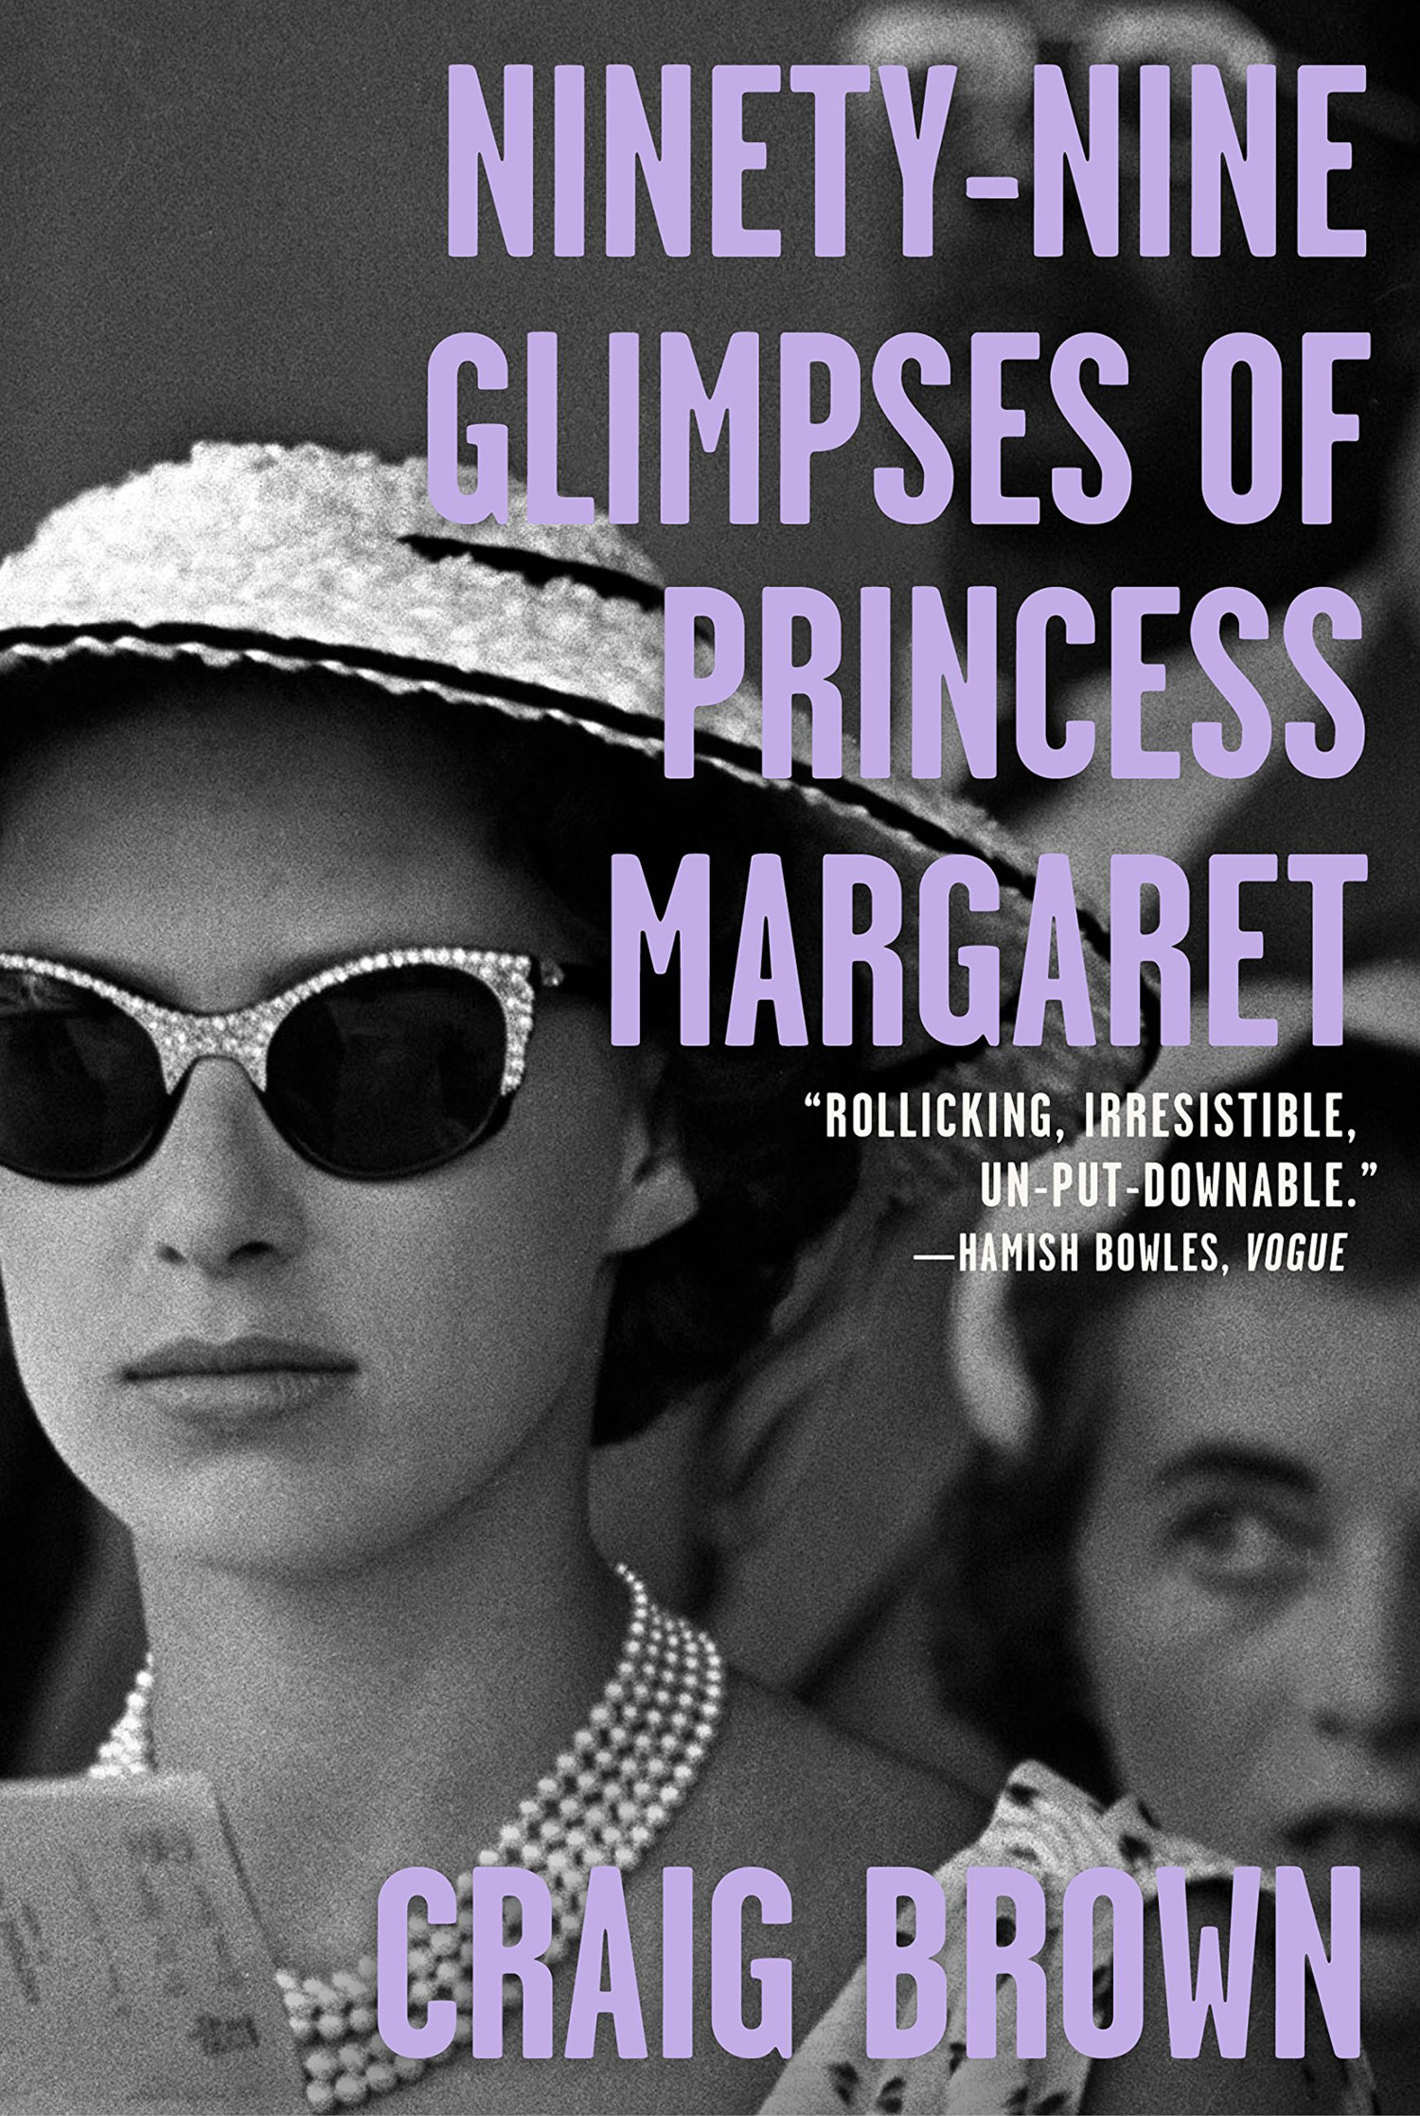 <em>Ninety-Nine Glimpses of Princess Margaret</em> by Craig Brown